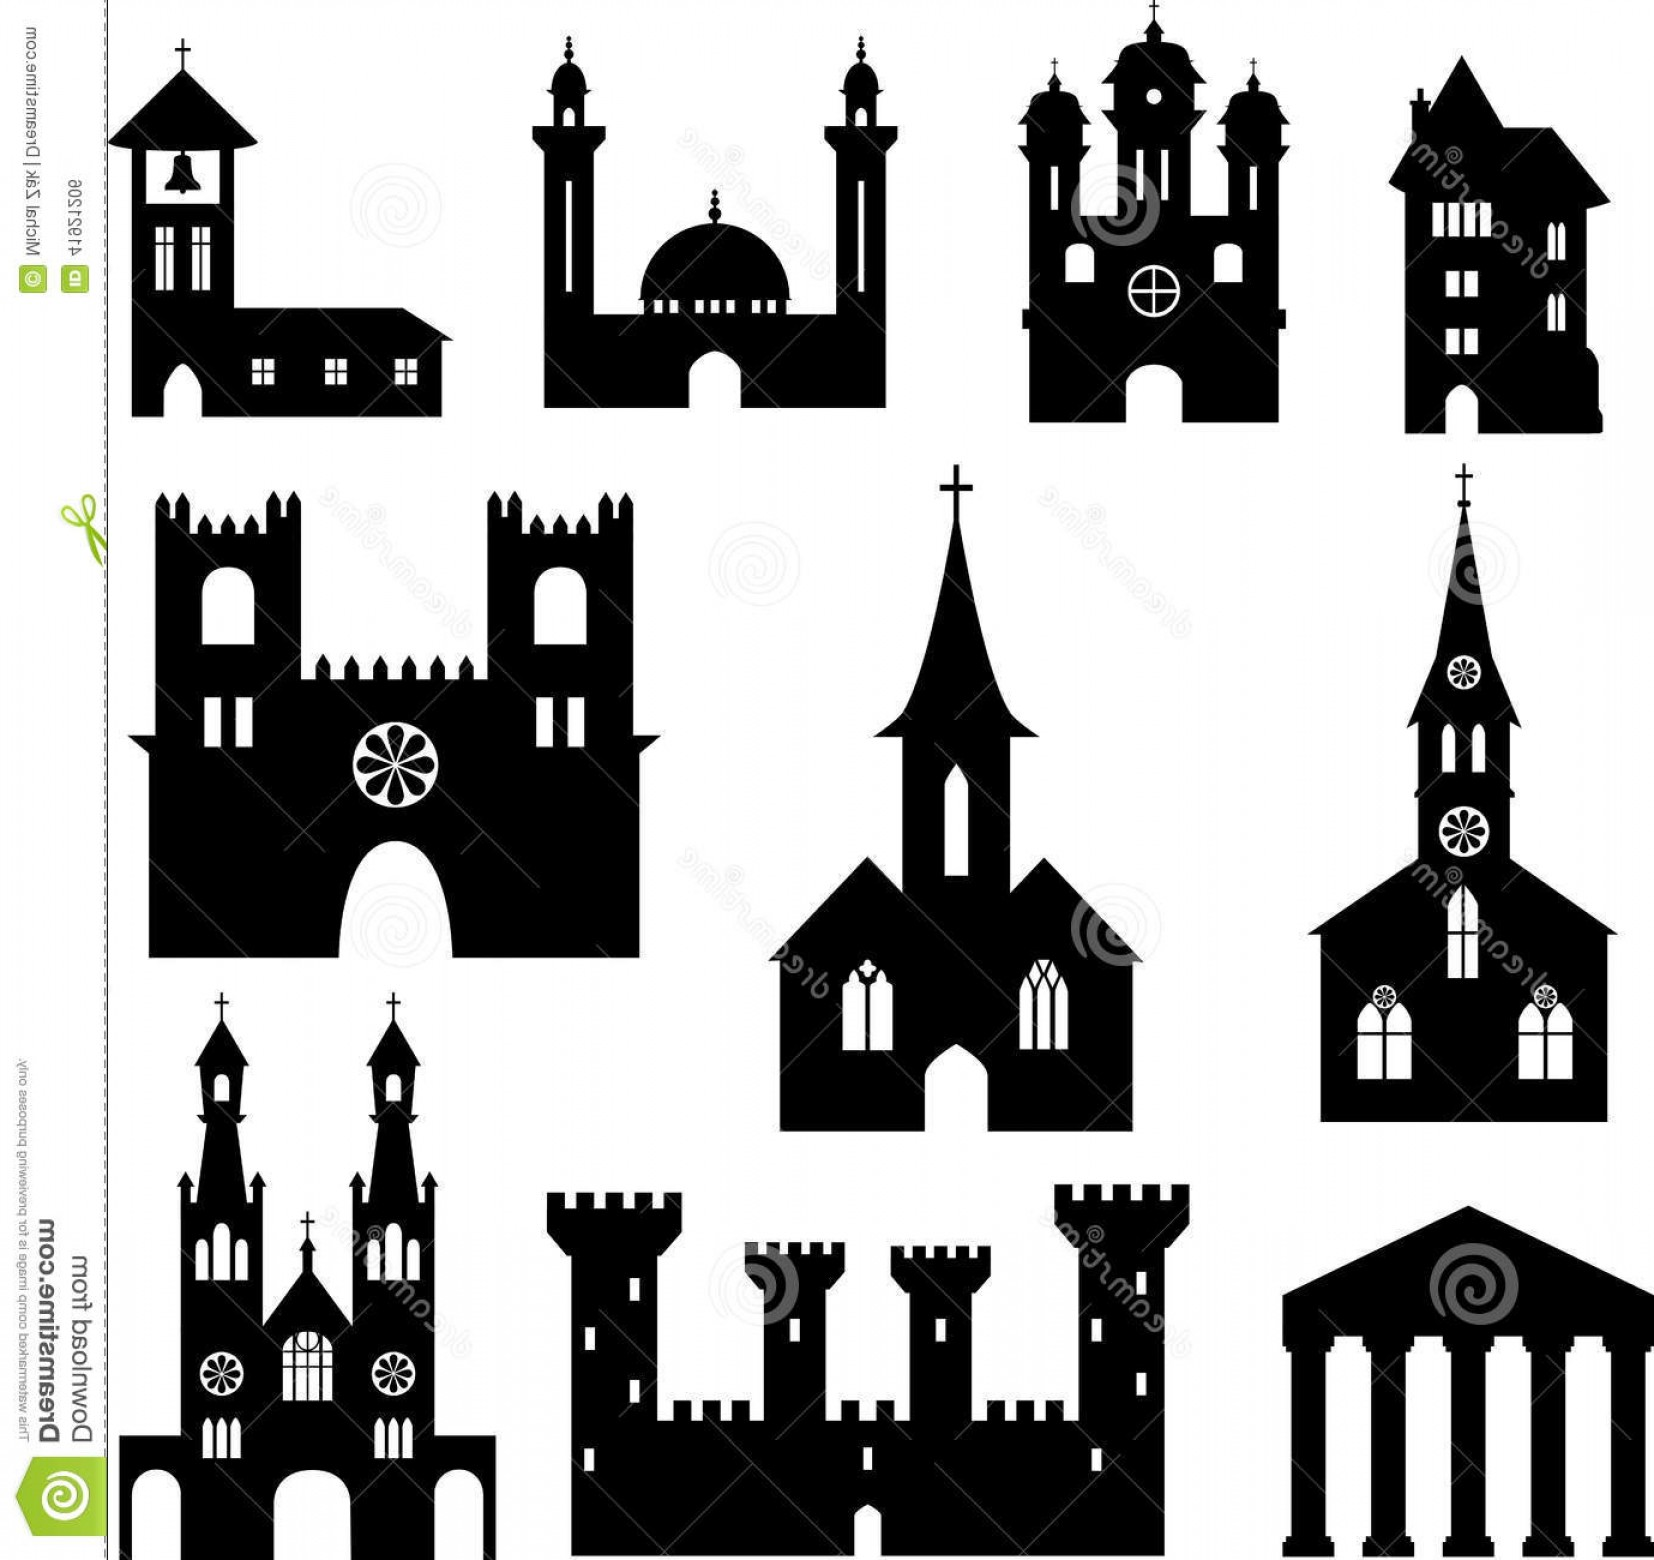 Church Silhouette Vector: Stock Illustration Buildings Set Silhouette Containing Churches Mosque Castles Image